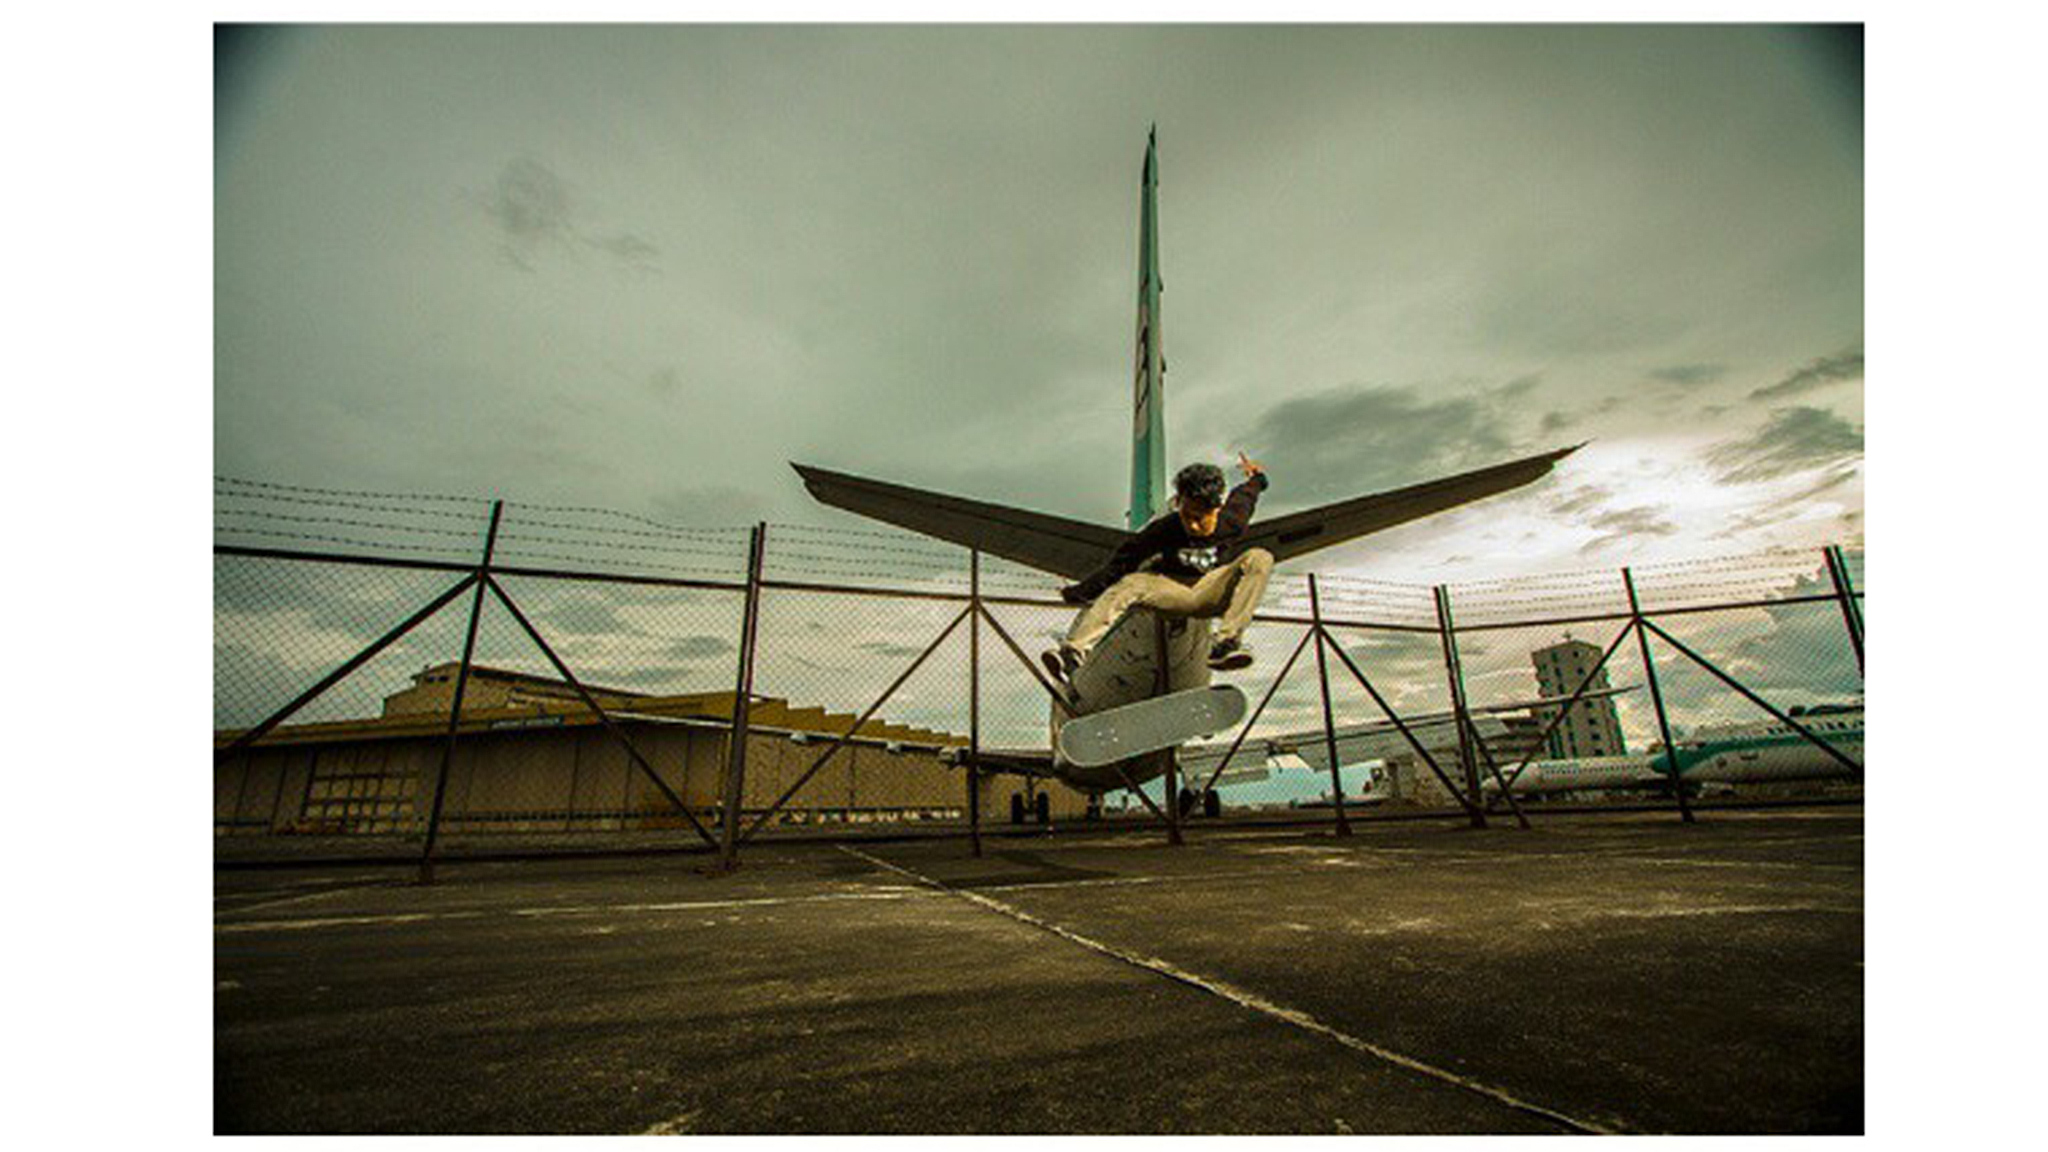 It's an awesome composition overall. It's really kind of got this almost Eastern European feeling in the background with the barbed wire and the plane and the way that the photo has juxtaposed the skater against the plane. The caption was really cool: 'Fly like a plane.' -- Alex Hillinger